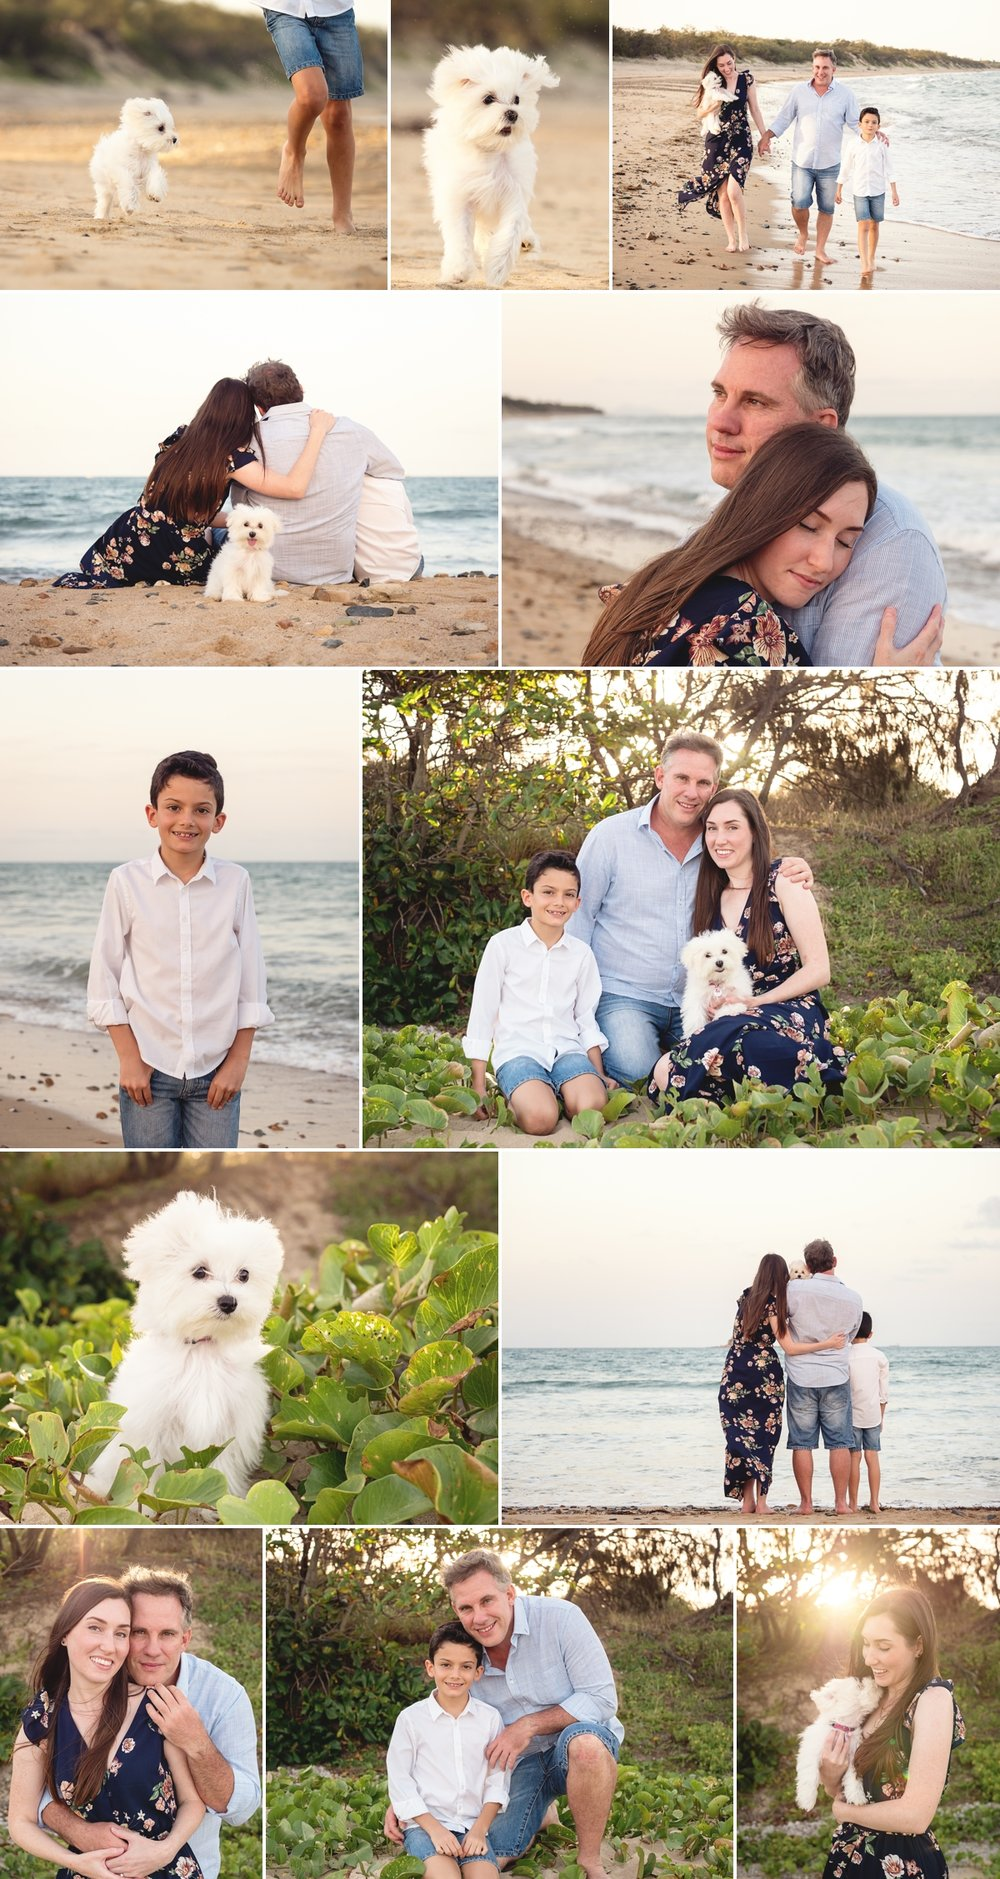 North-Wall-Beach-Mackay-Family-Photography-Gallery-1.jpg